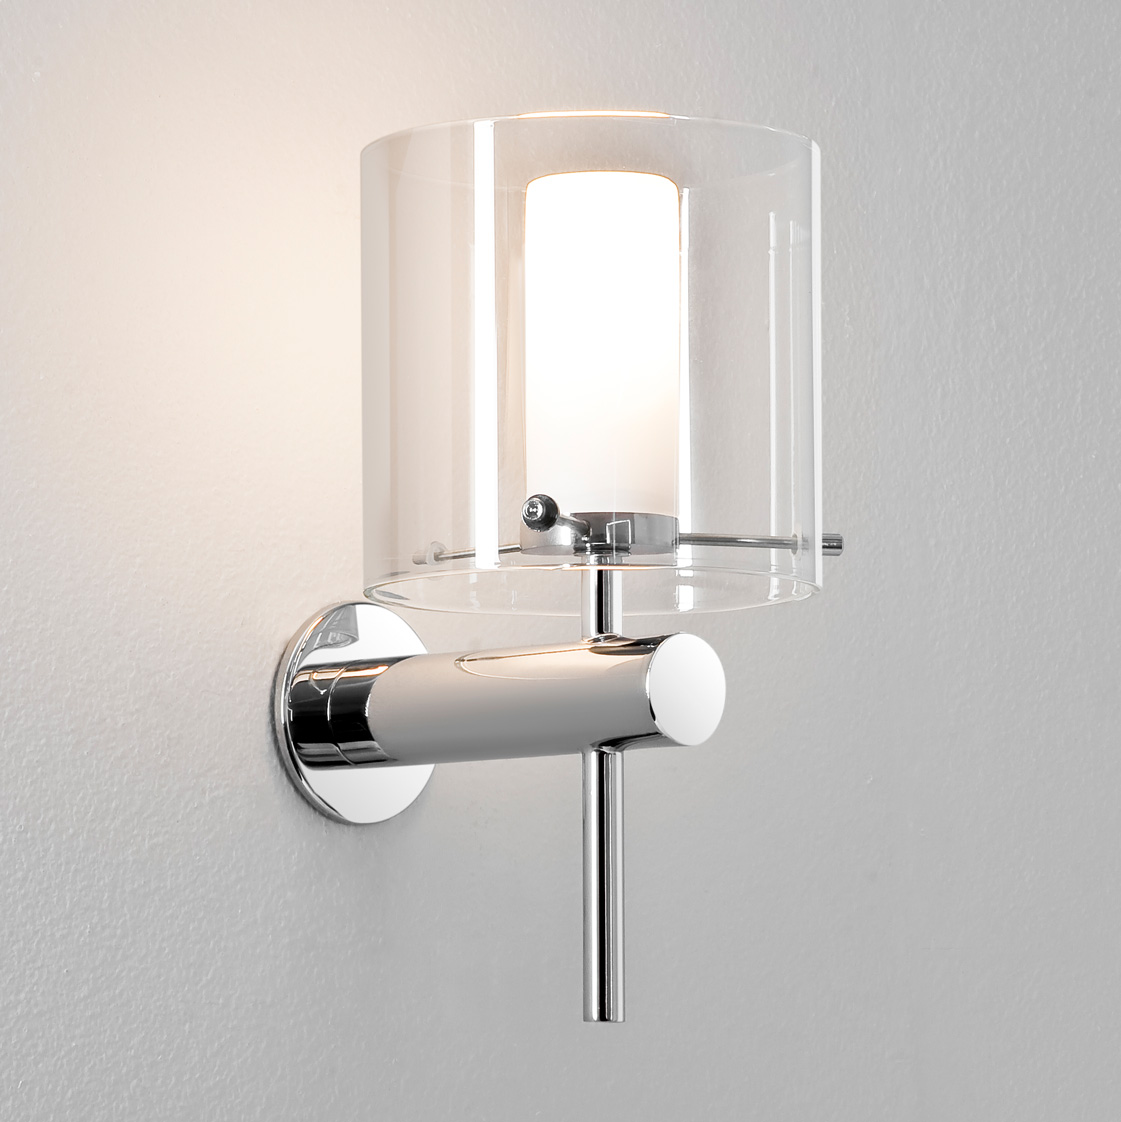 ASTRO Arrezzo 0342 Bathroom wall light 1 x 28W G9 lamp IP44 Chrome Glass shade